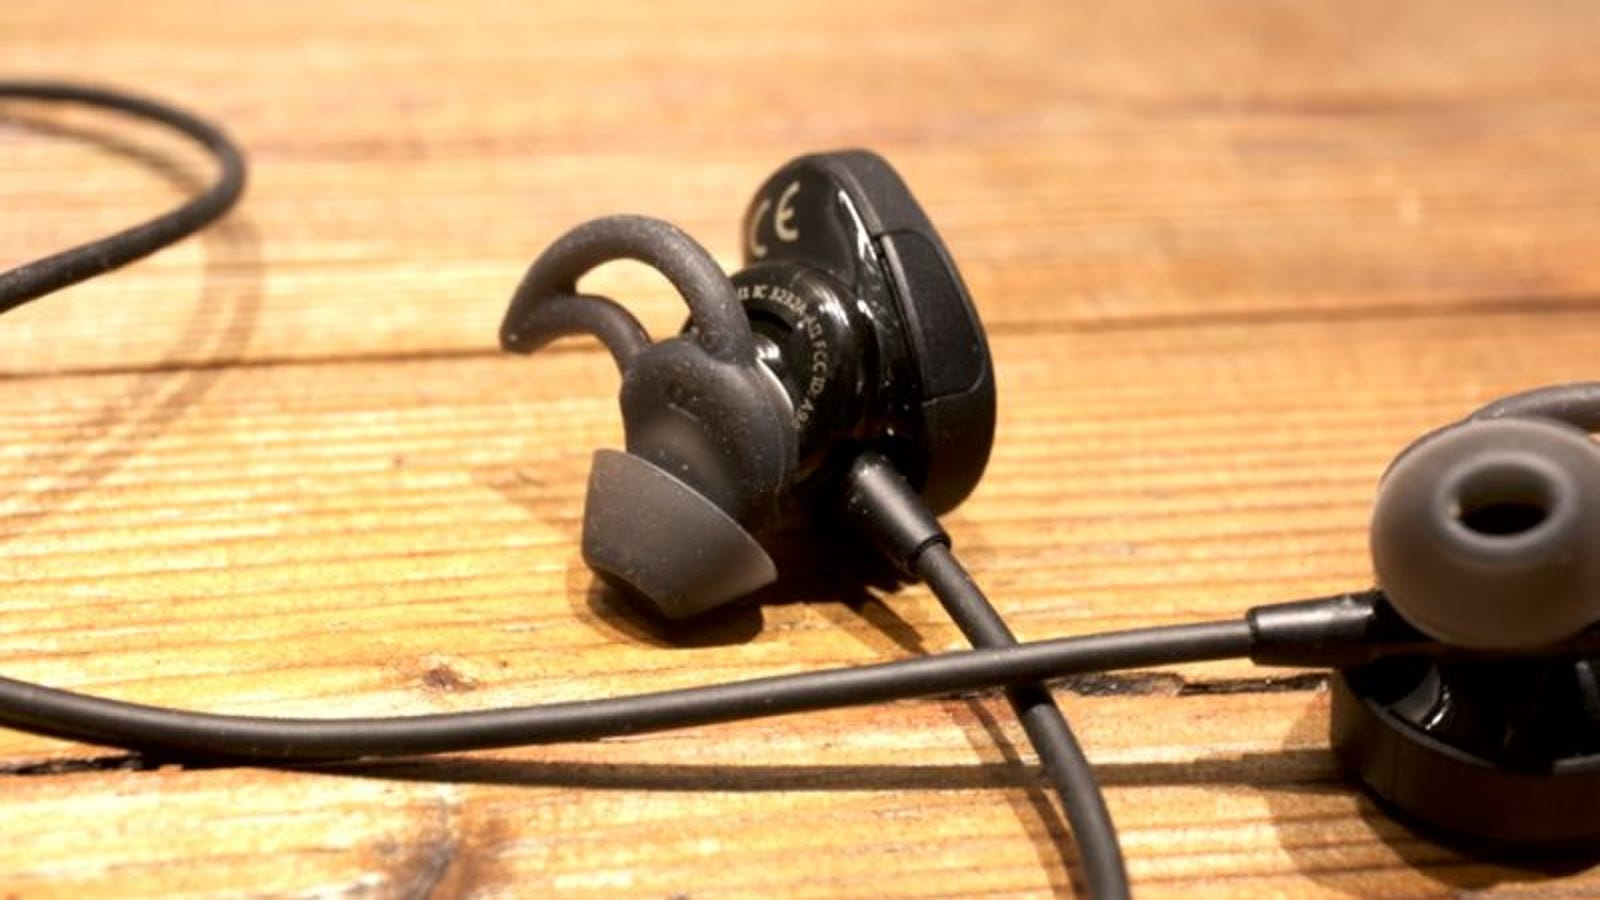 Earbuds gaming with mic - earphones with microphone gaming